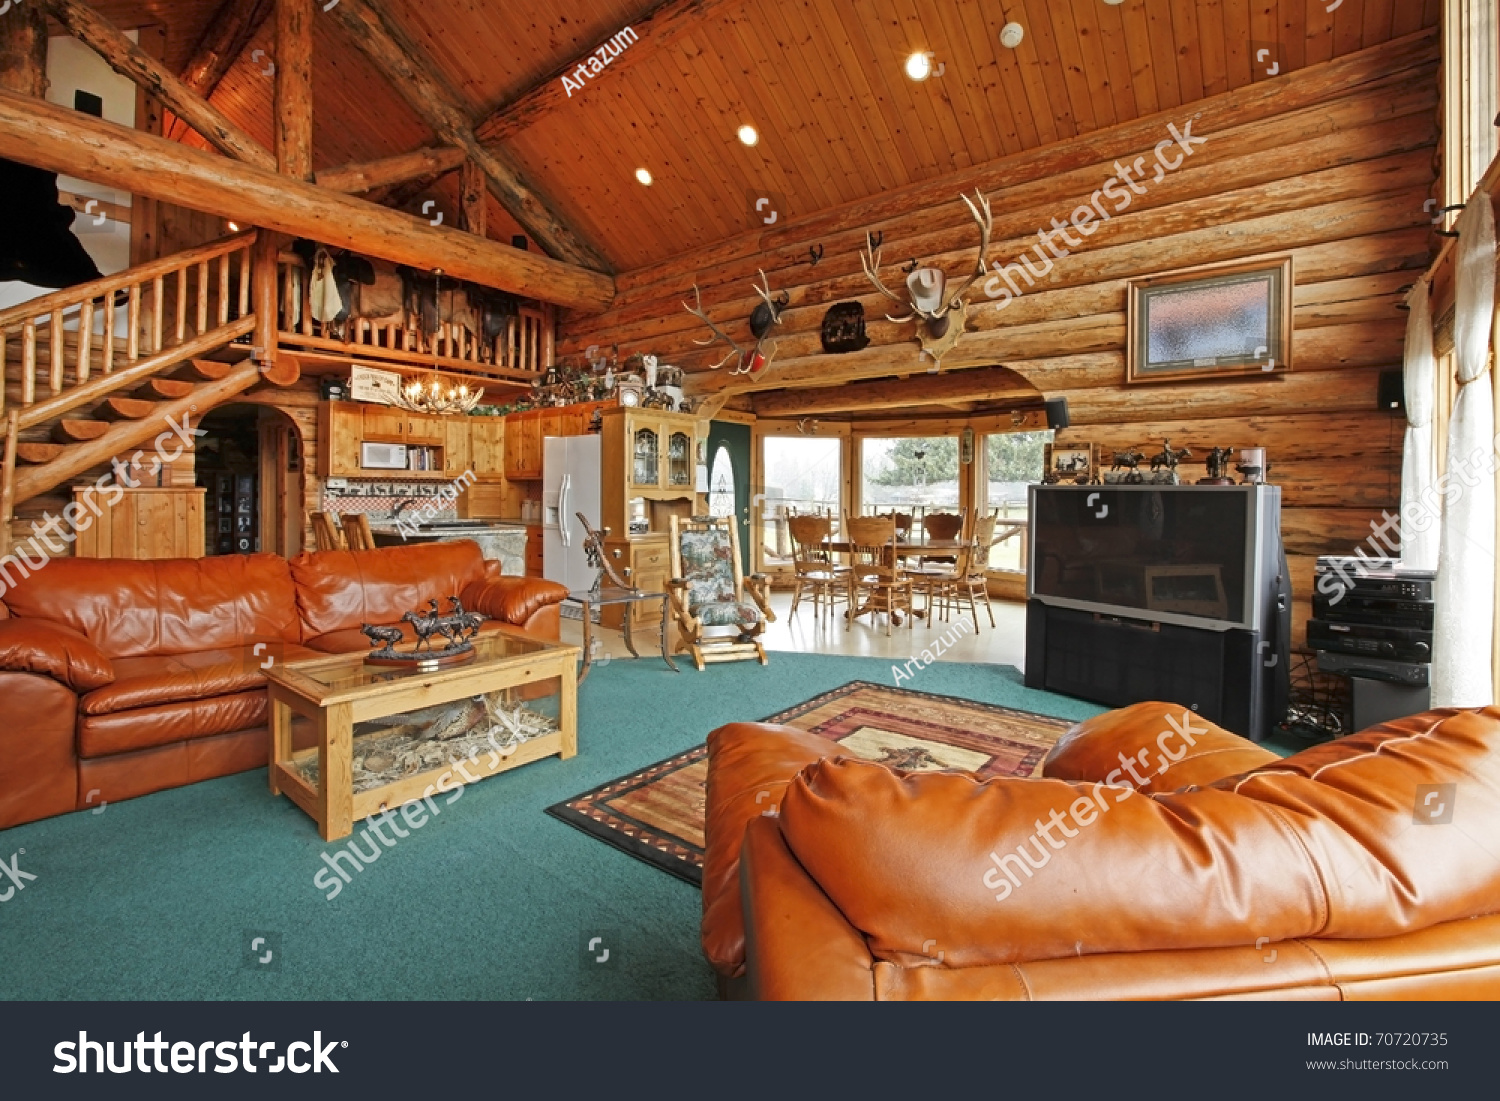 cowboy living room. Large living room of the log cabin with cowboy style Living Room Log Cabin Cowboy Stock Photo 70720735  Shutterstock